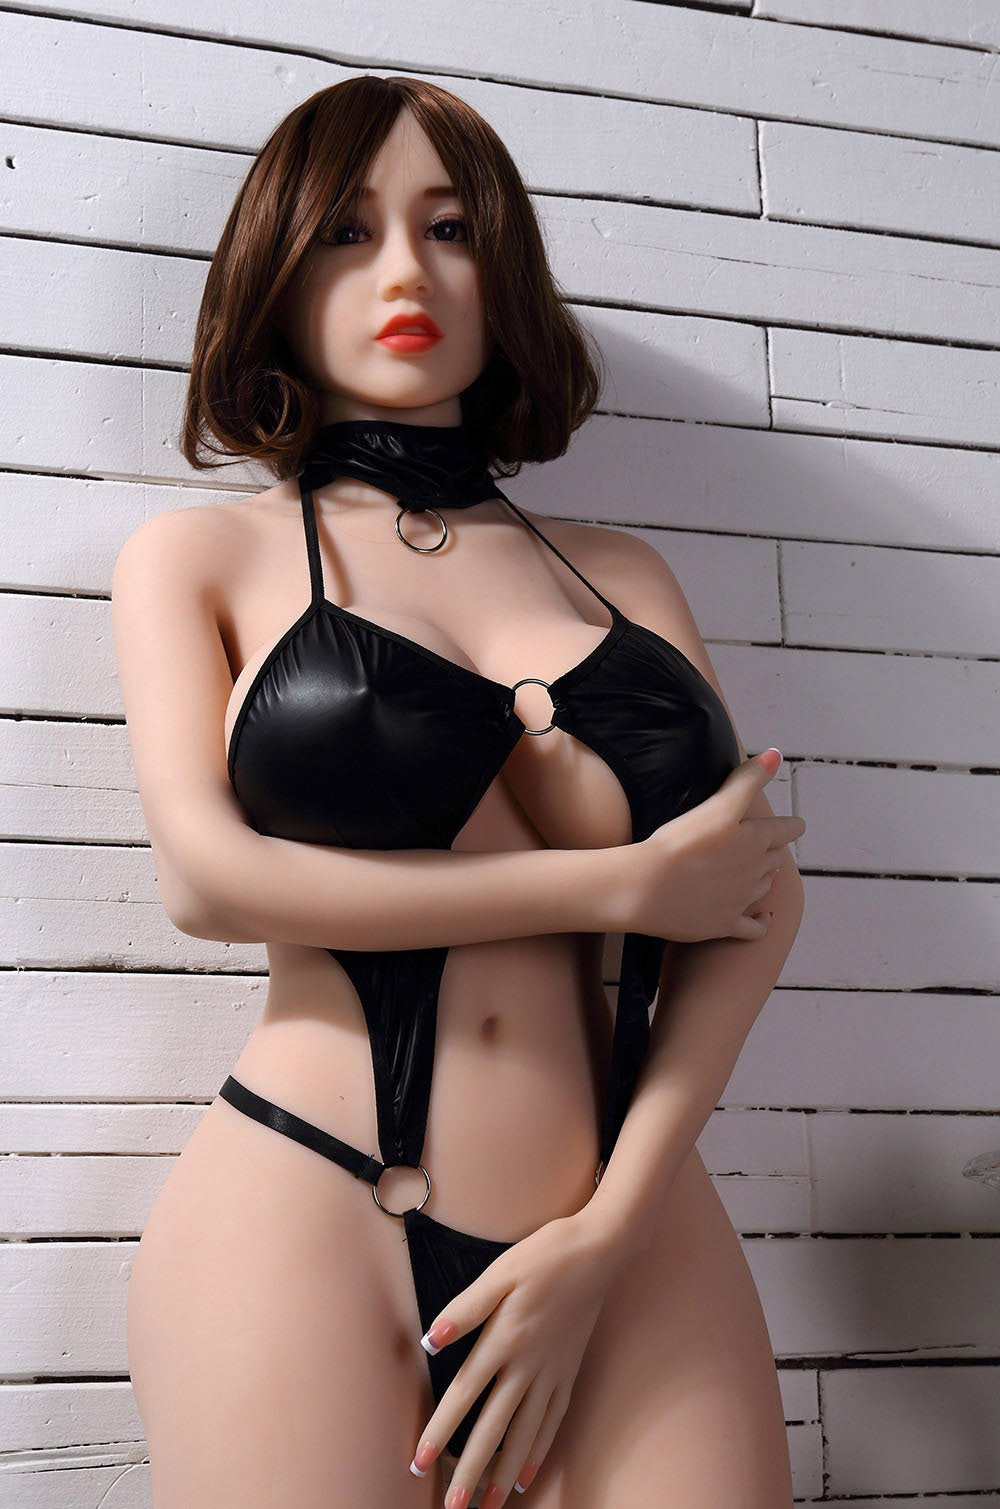 chloe 150cm brown hair curvy big boobs tpe wm asian small sex doll